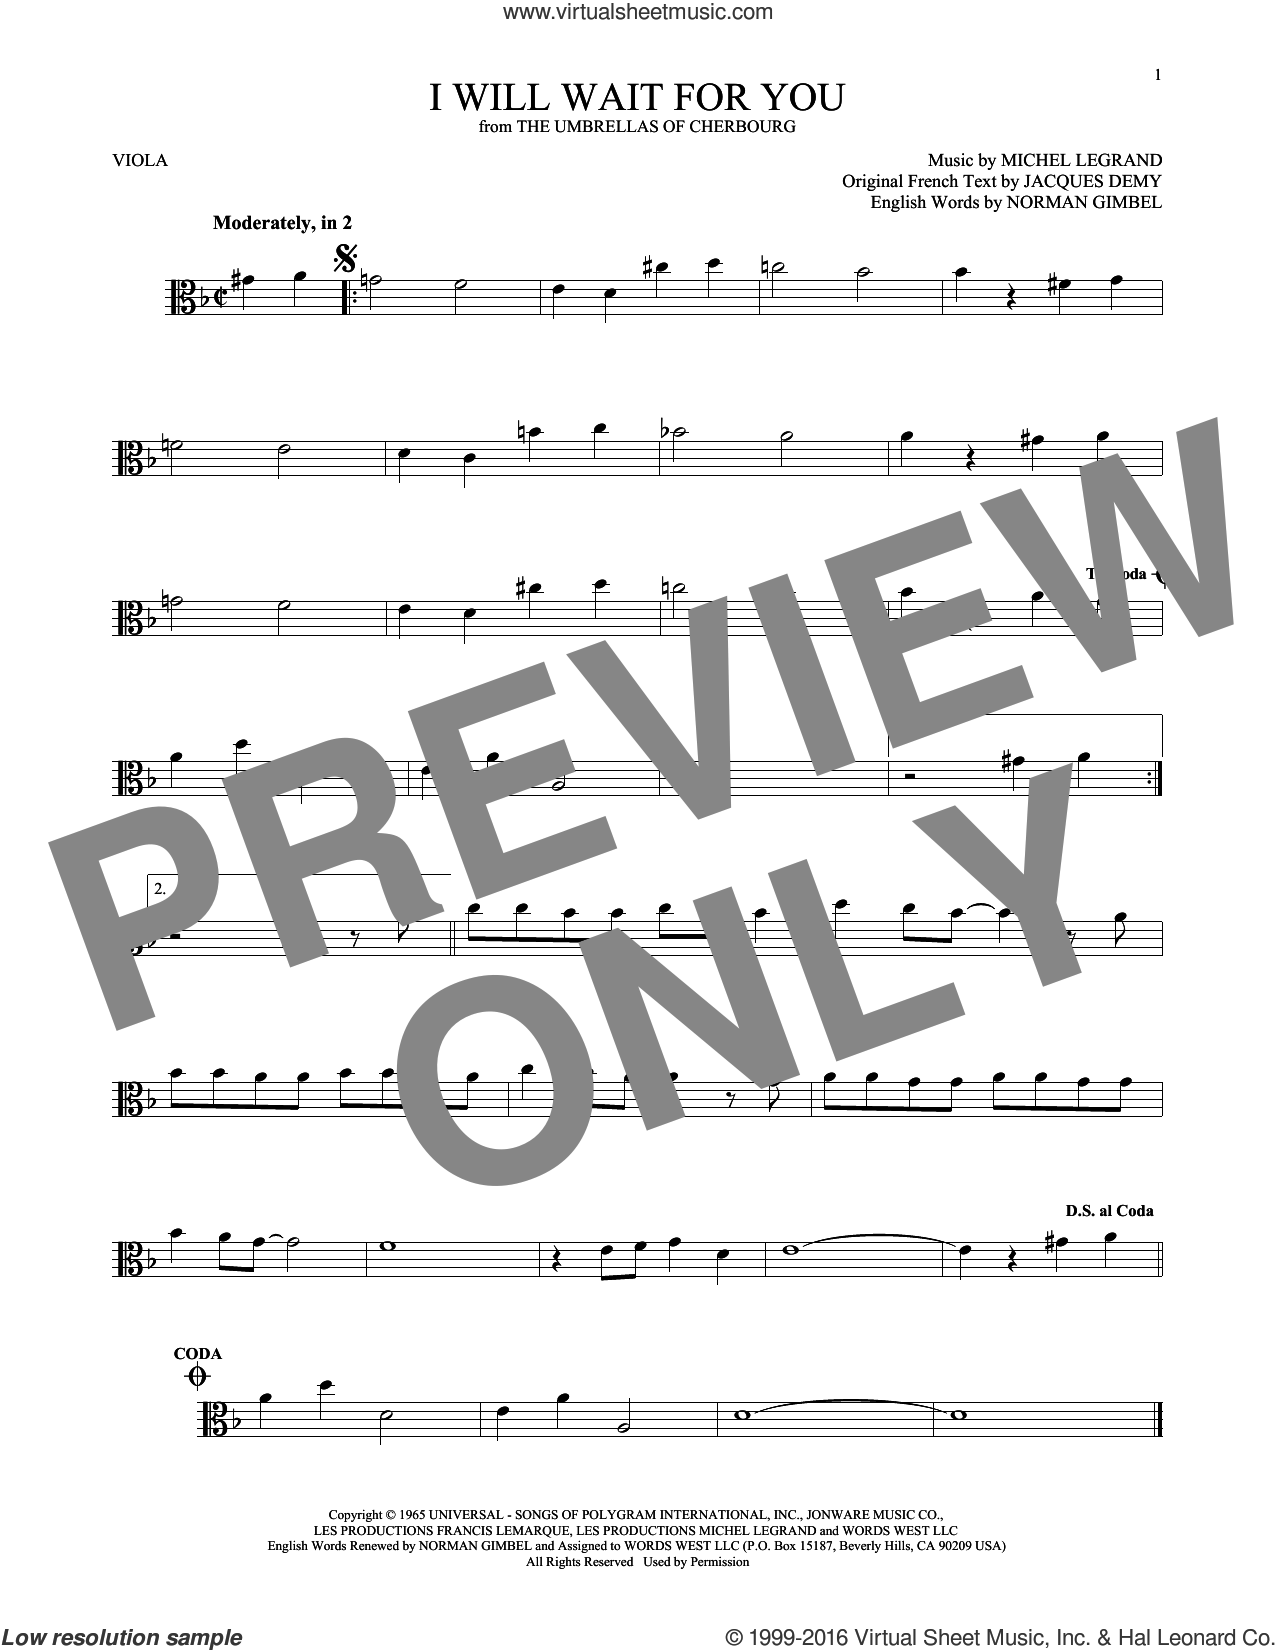 I Will Wait For You sheet music for viola solo by Michel Legrand, Jacques Demy and Norman Gimbel, intermediate skill level